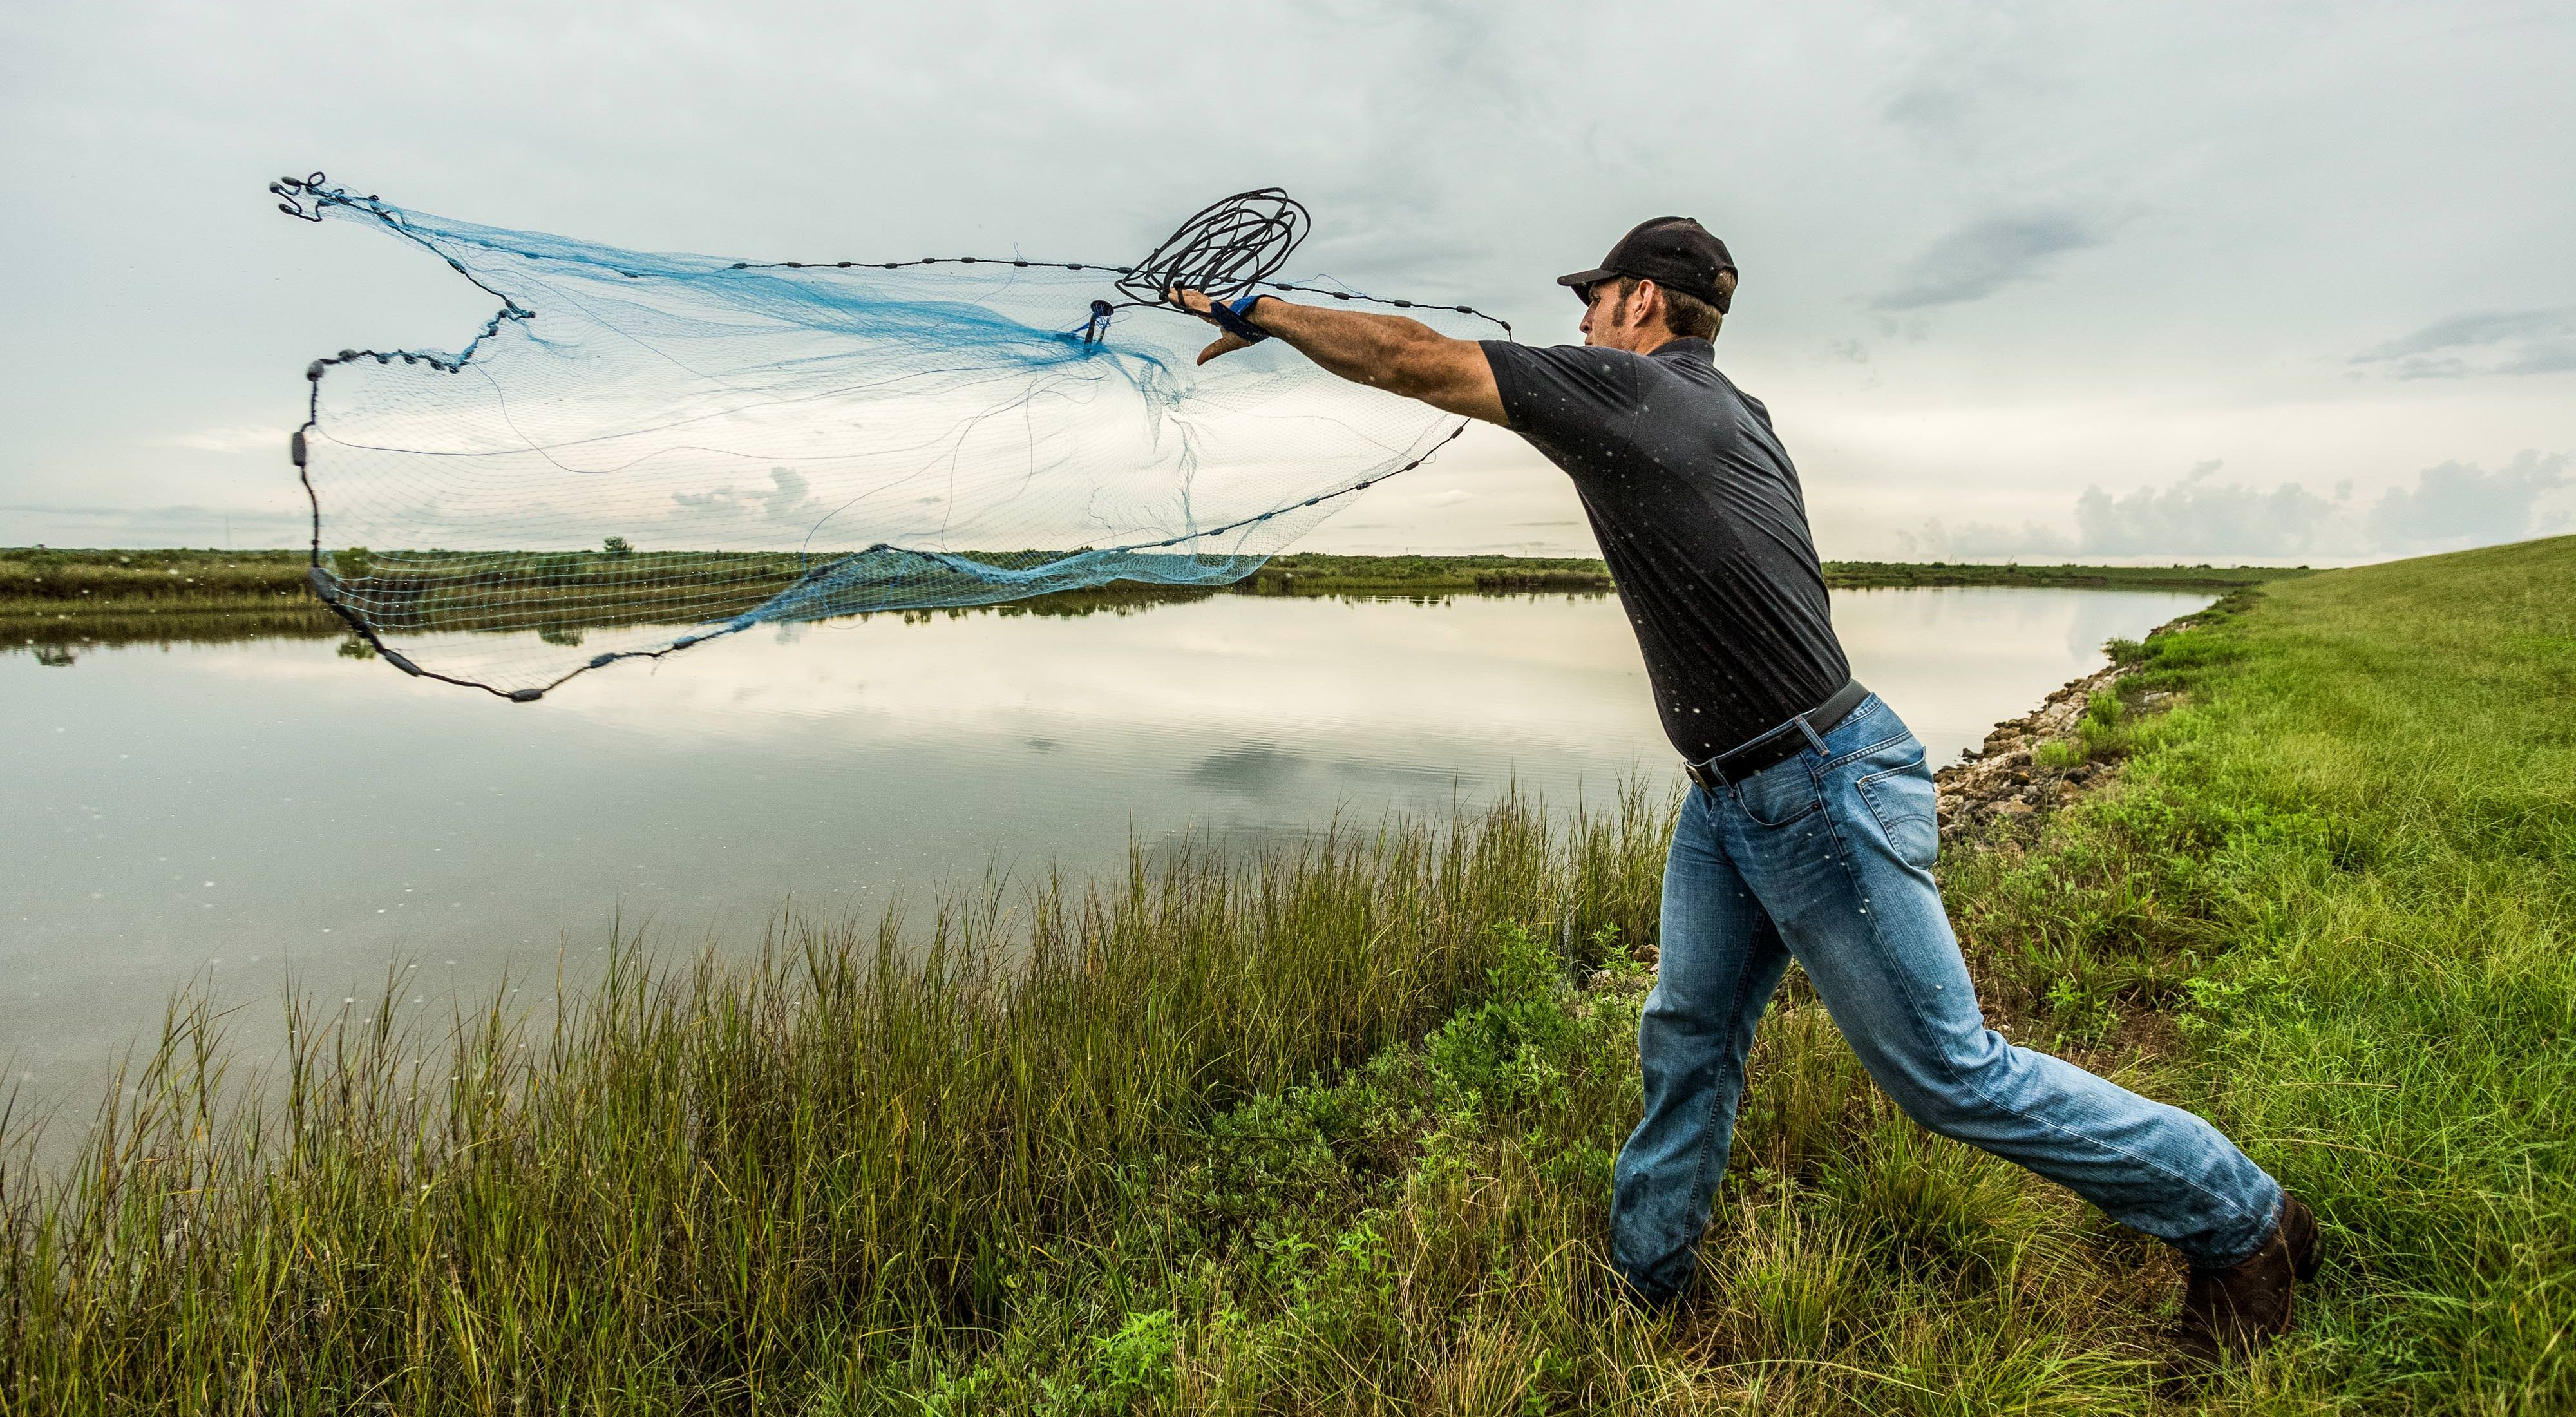 Casting a net at TNC's Texas City Prairie Preserve is 2,303 acres of coastal prairie that is vital to the natural resilience of the Gulf Coast.